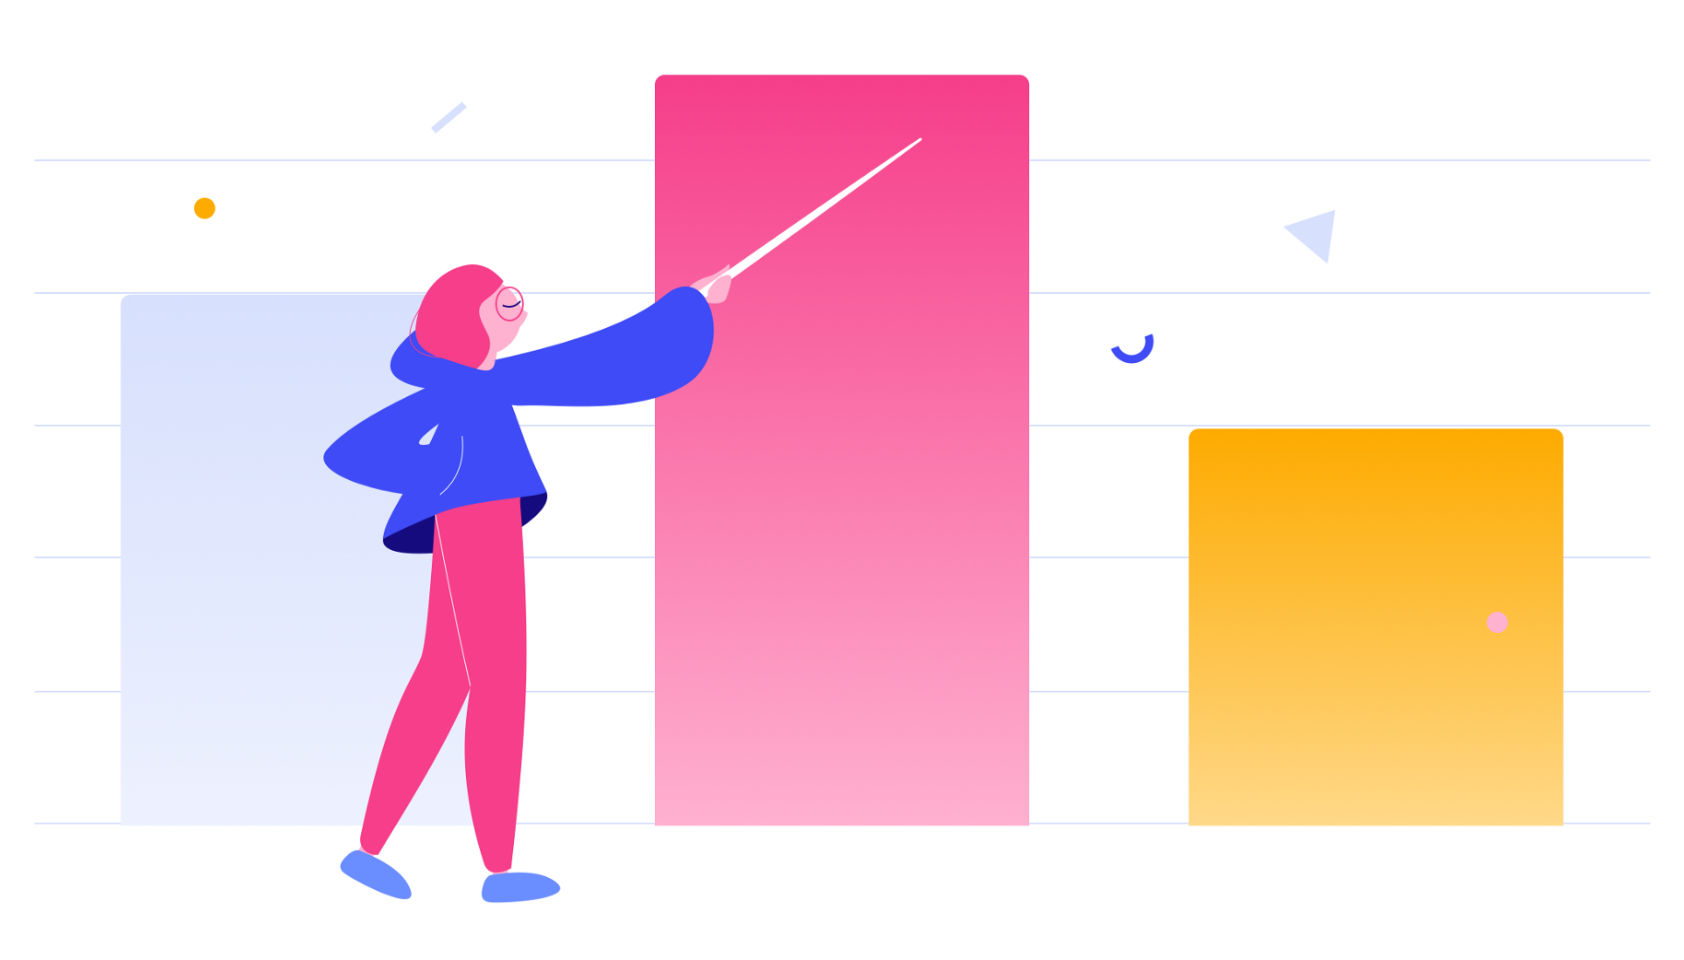 Popular design news of the week: April 6, 2020 - April 12, 2020